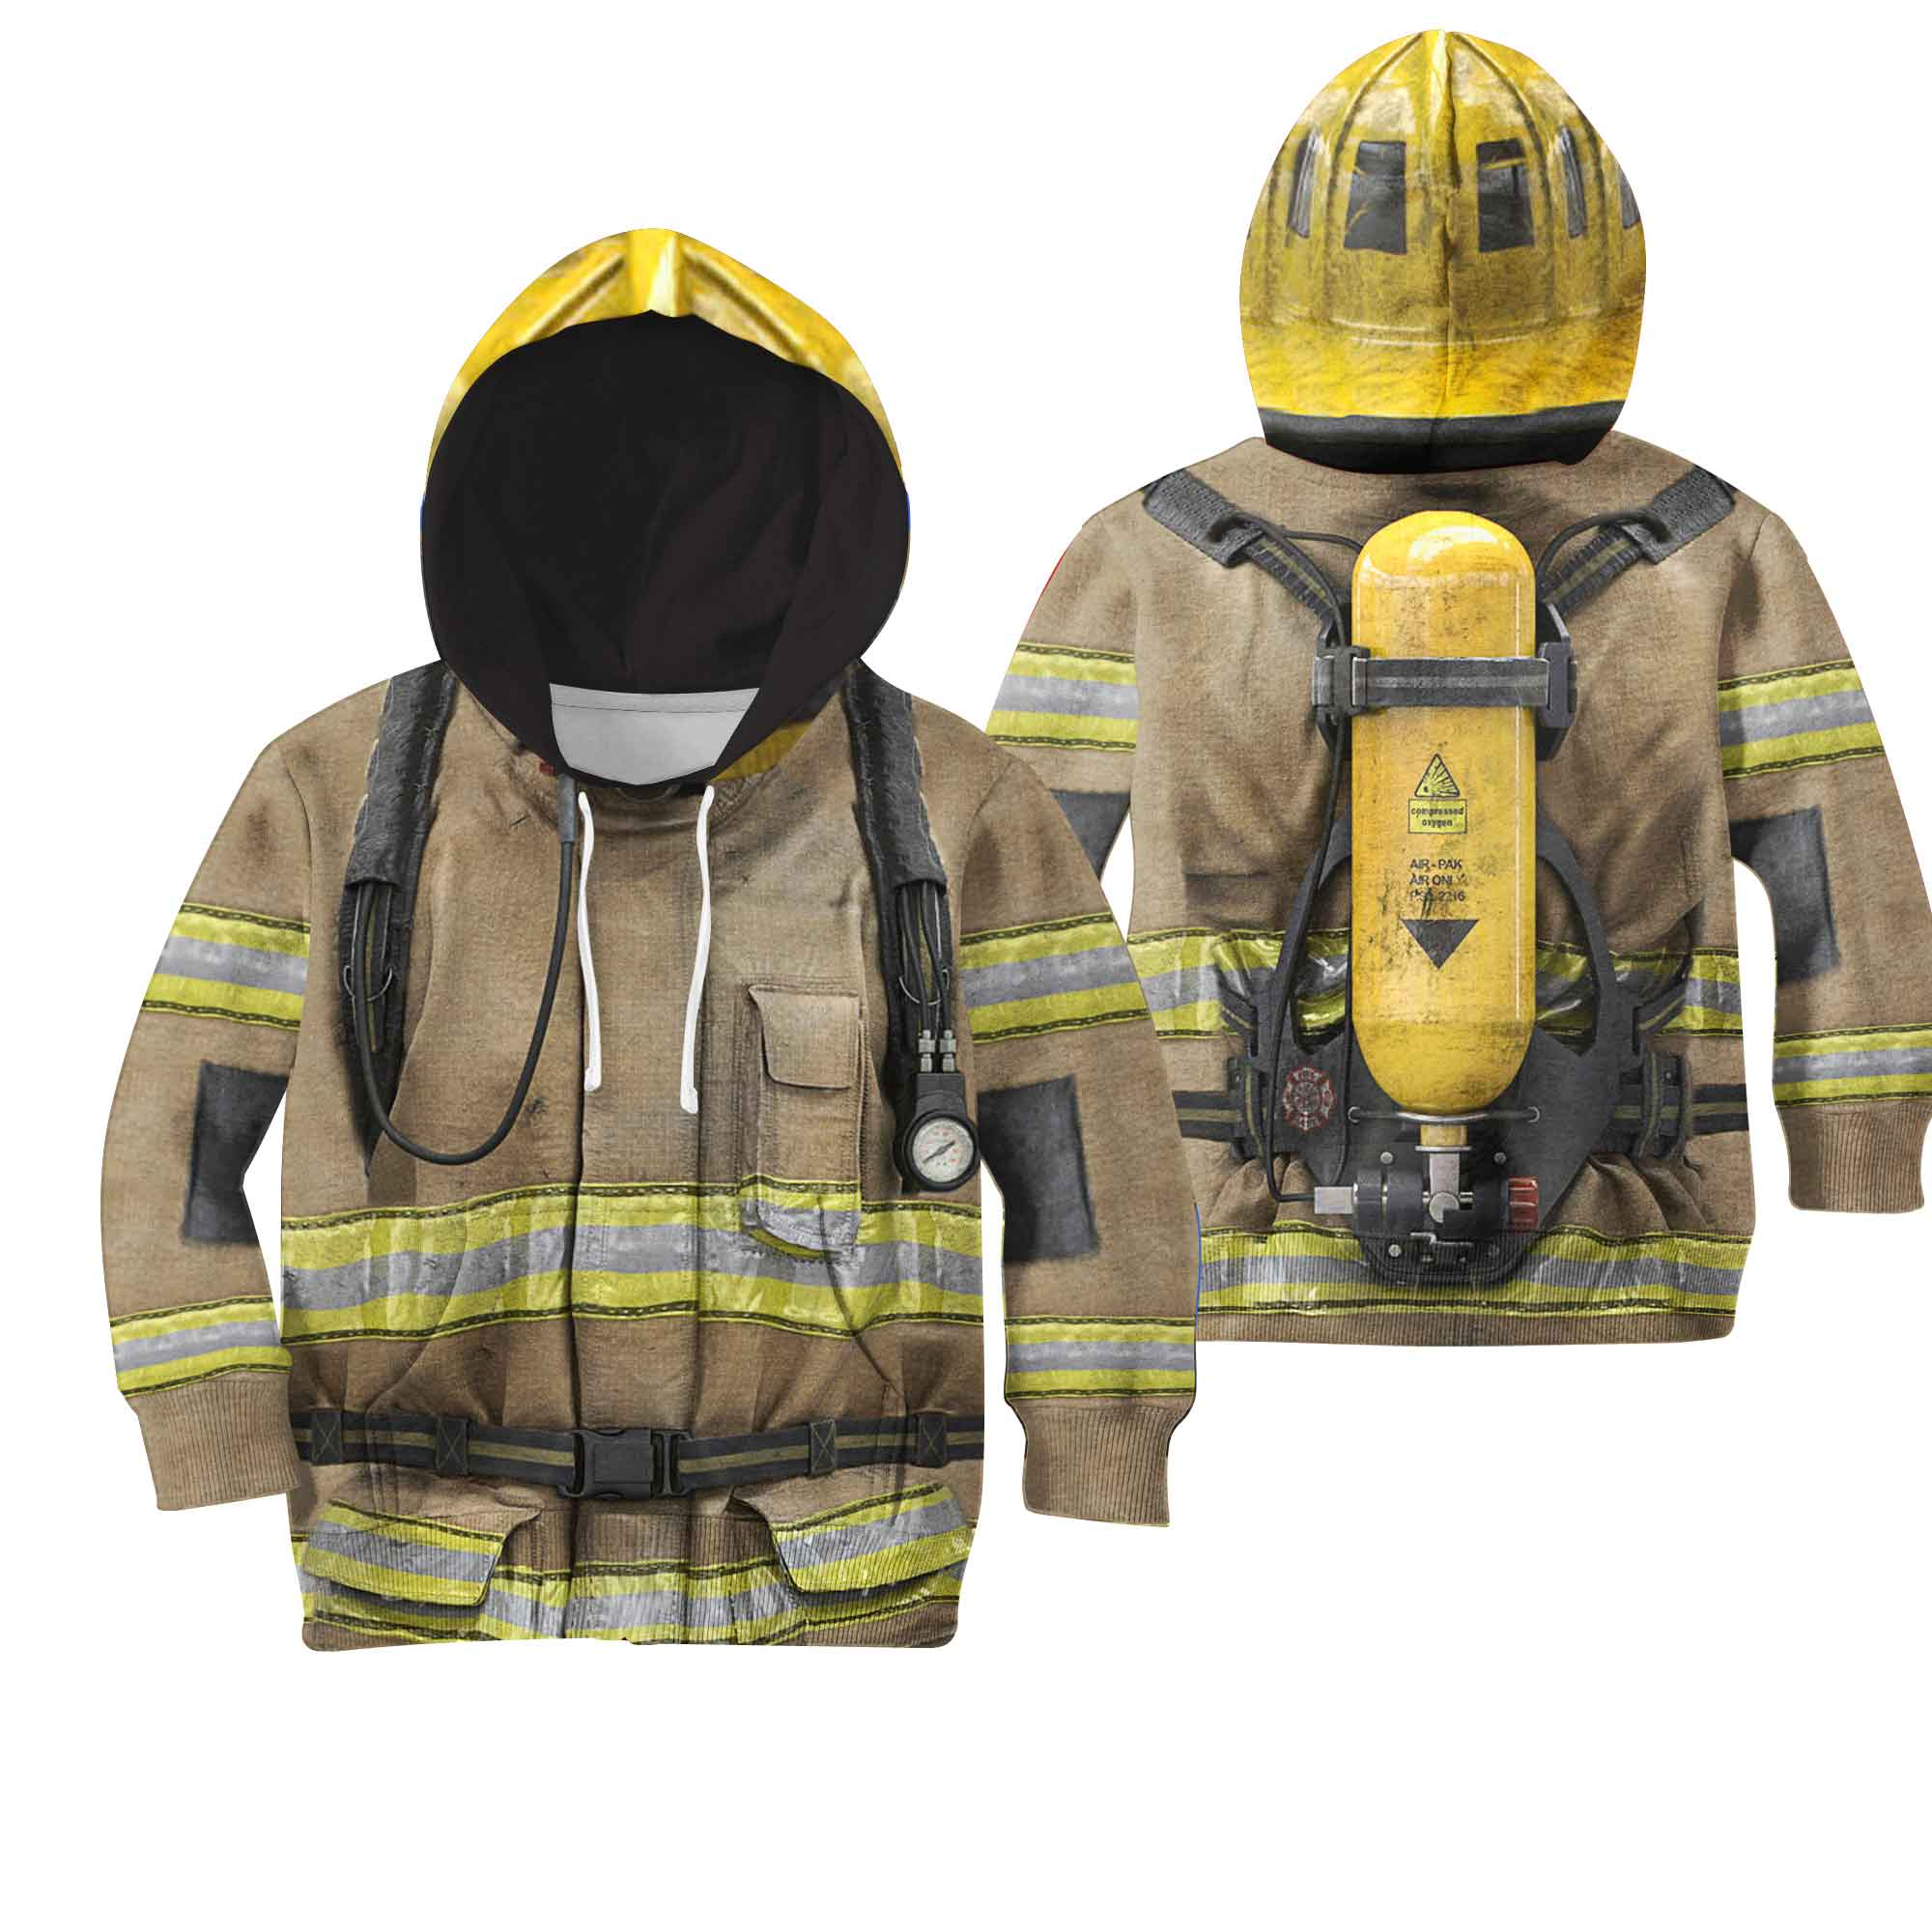 Firefighter Suit 3D All Over Printed Shirts For Kids